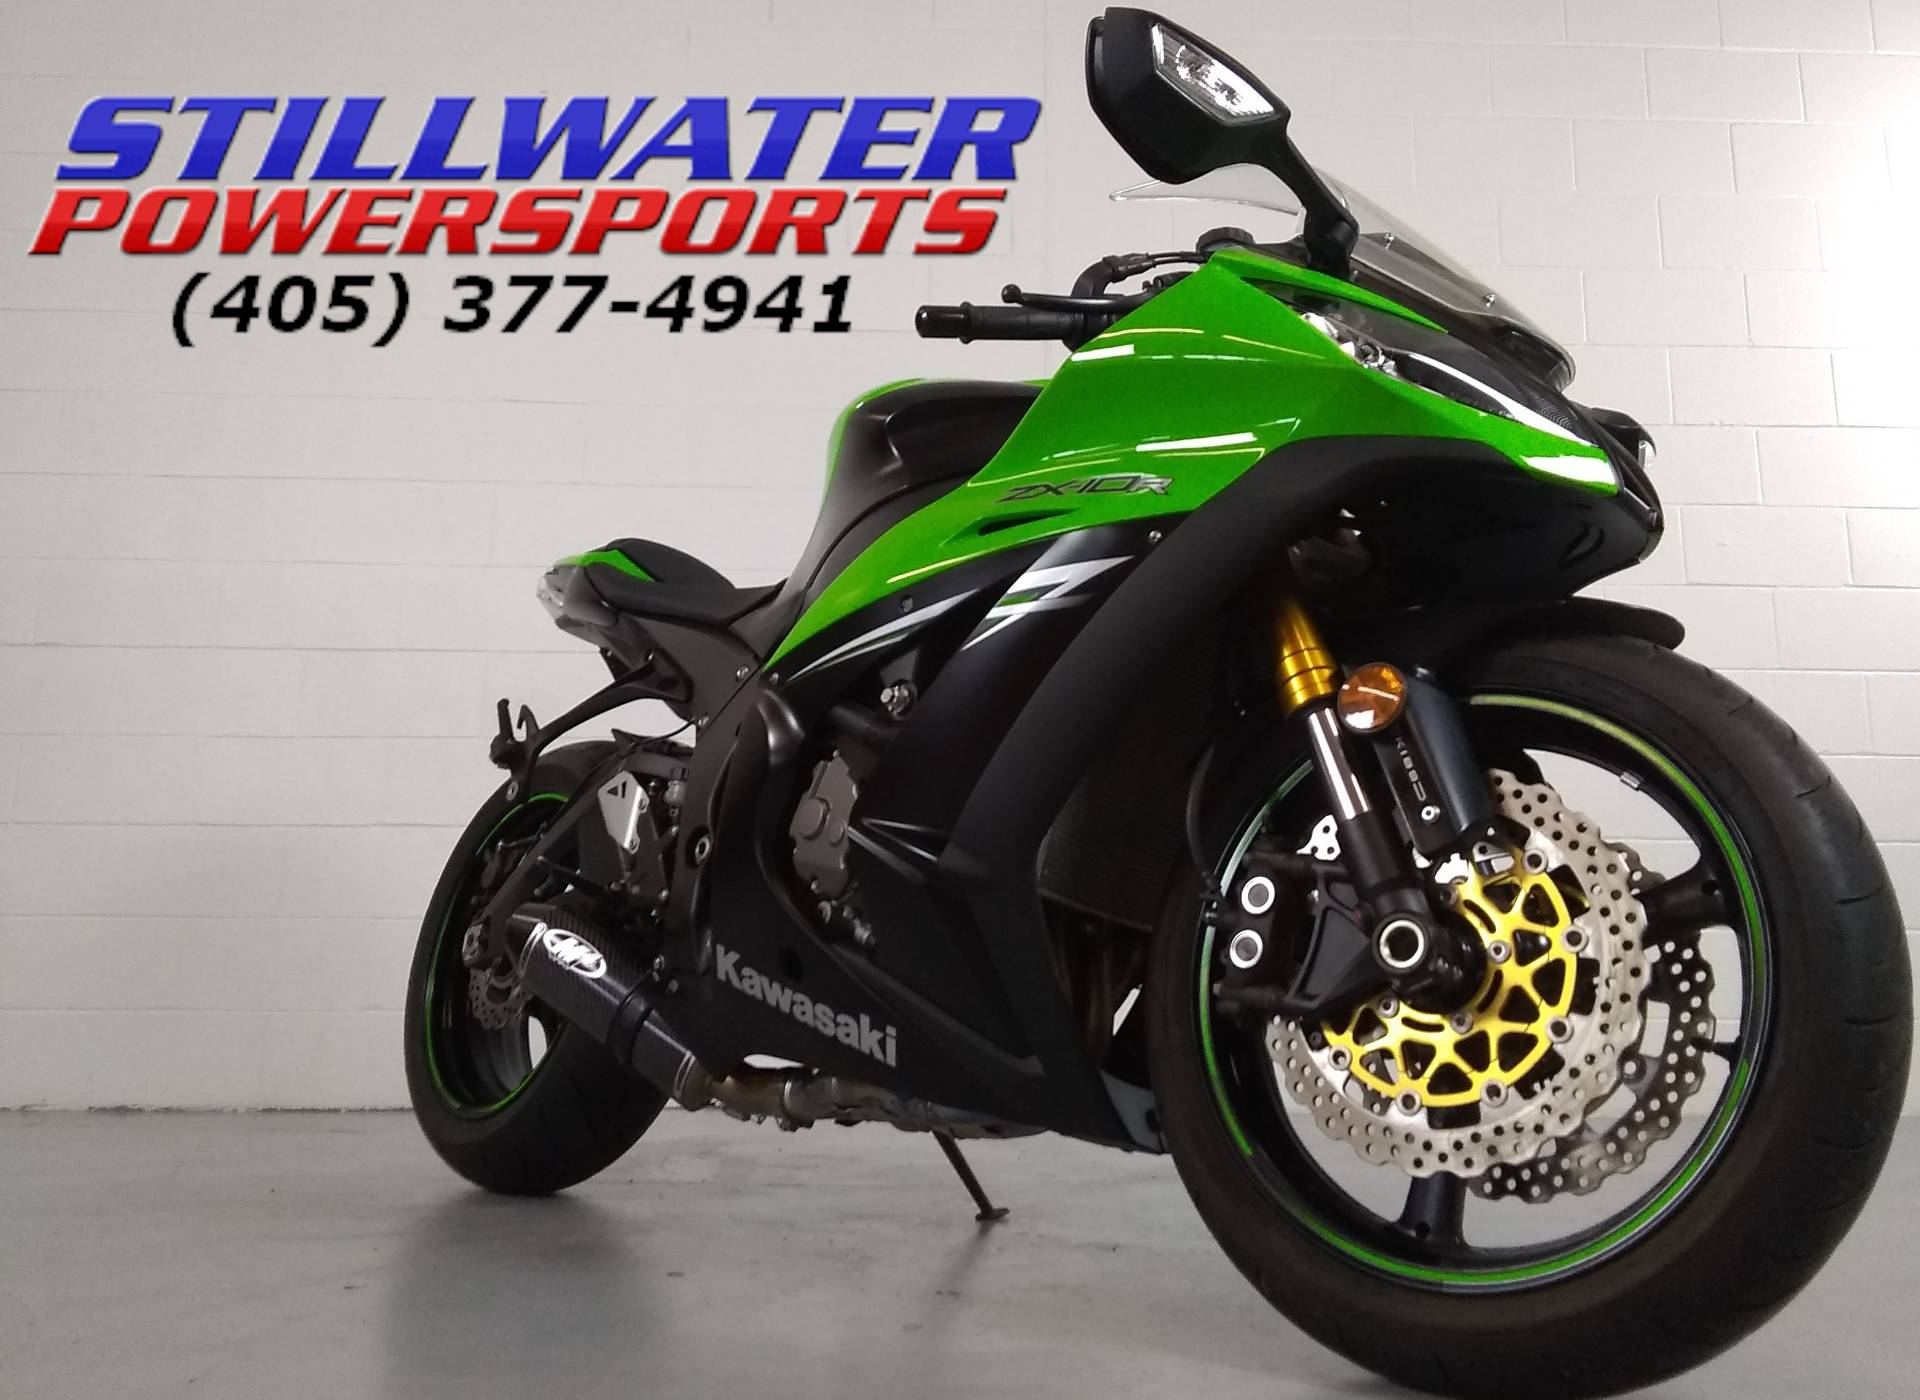 2014 Kawasaki Ninja® ZX™-10R ABS in Stillwater, Oklahoma - Photo 4